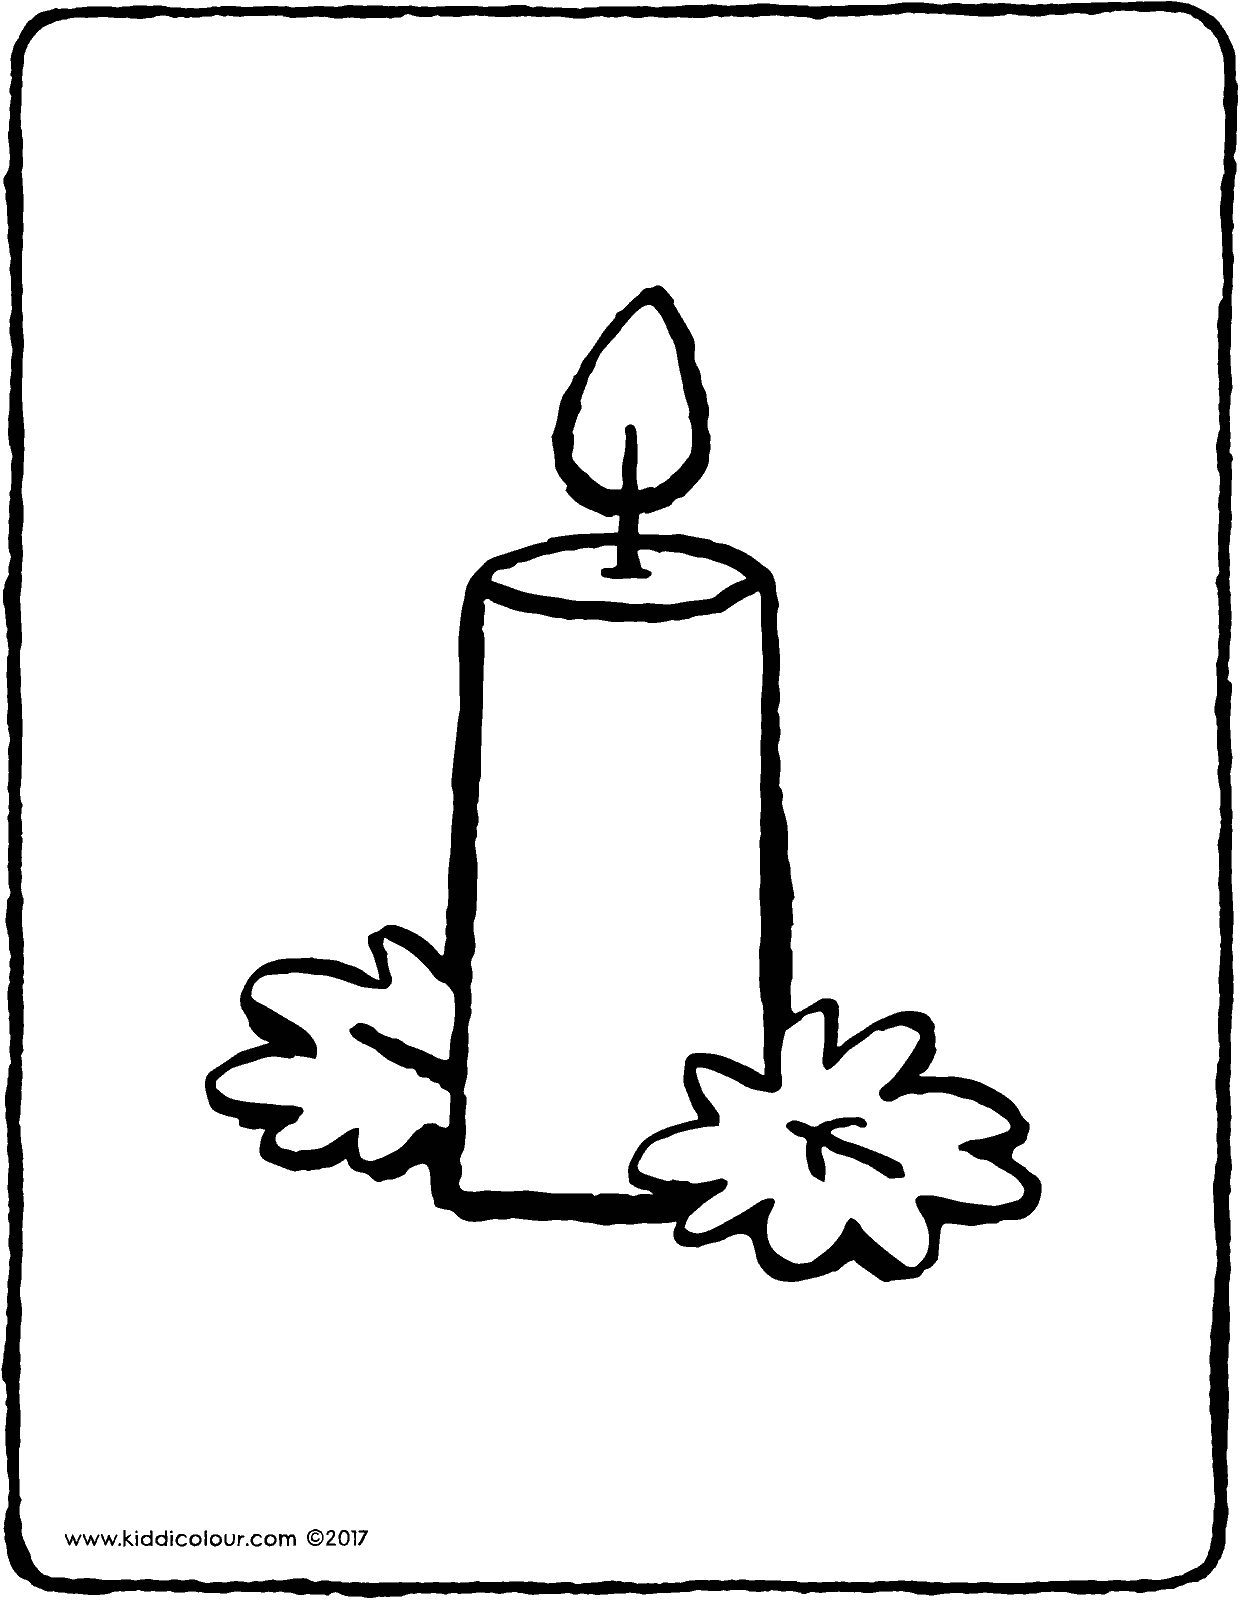 candle colouring page page drawing picture 01V